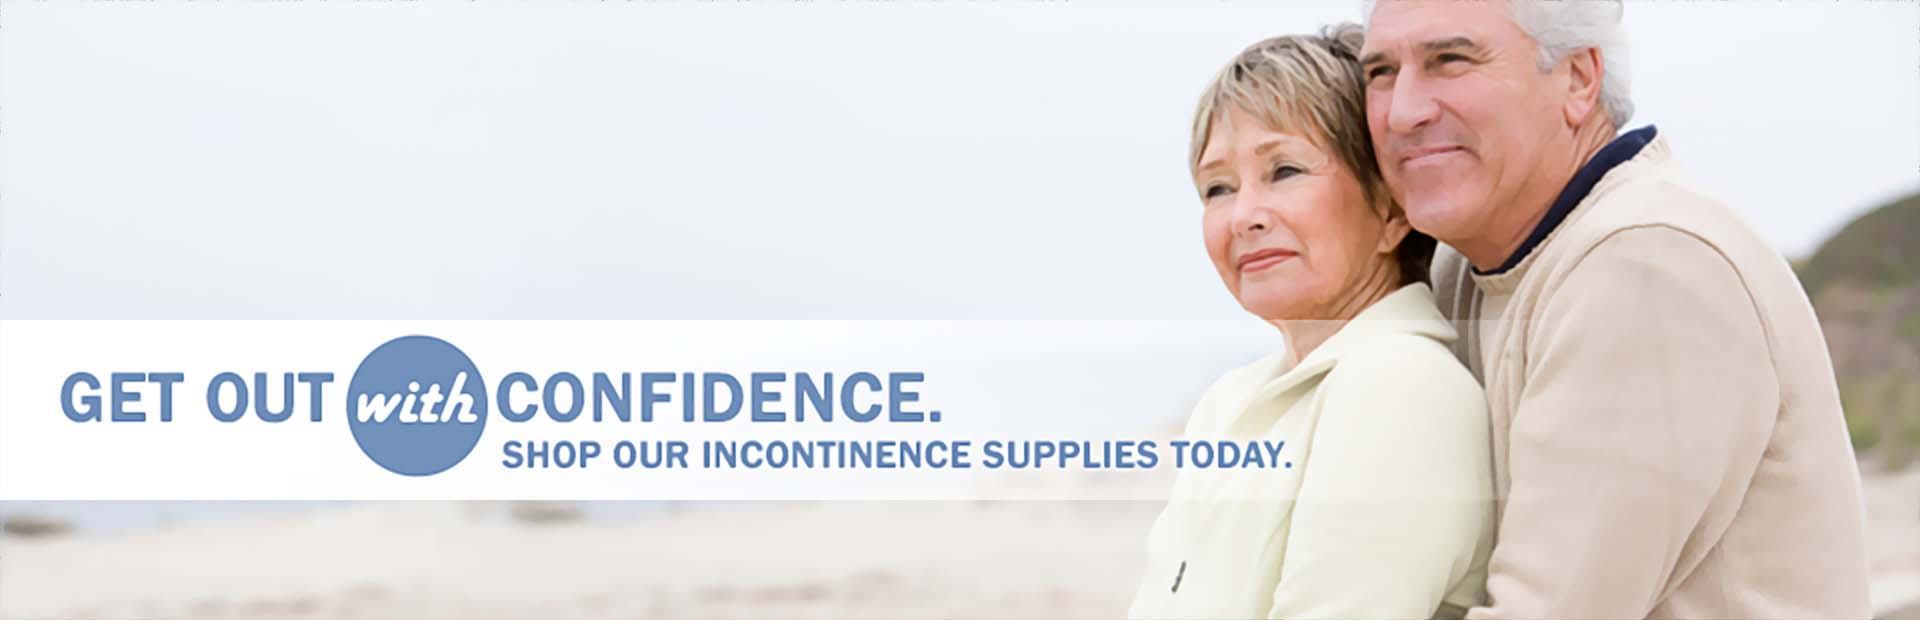 Get out with confidence! Click here to shop our incontinence supplies today.